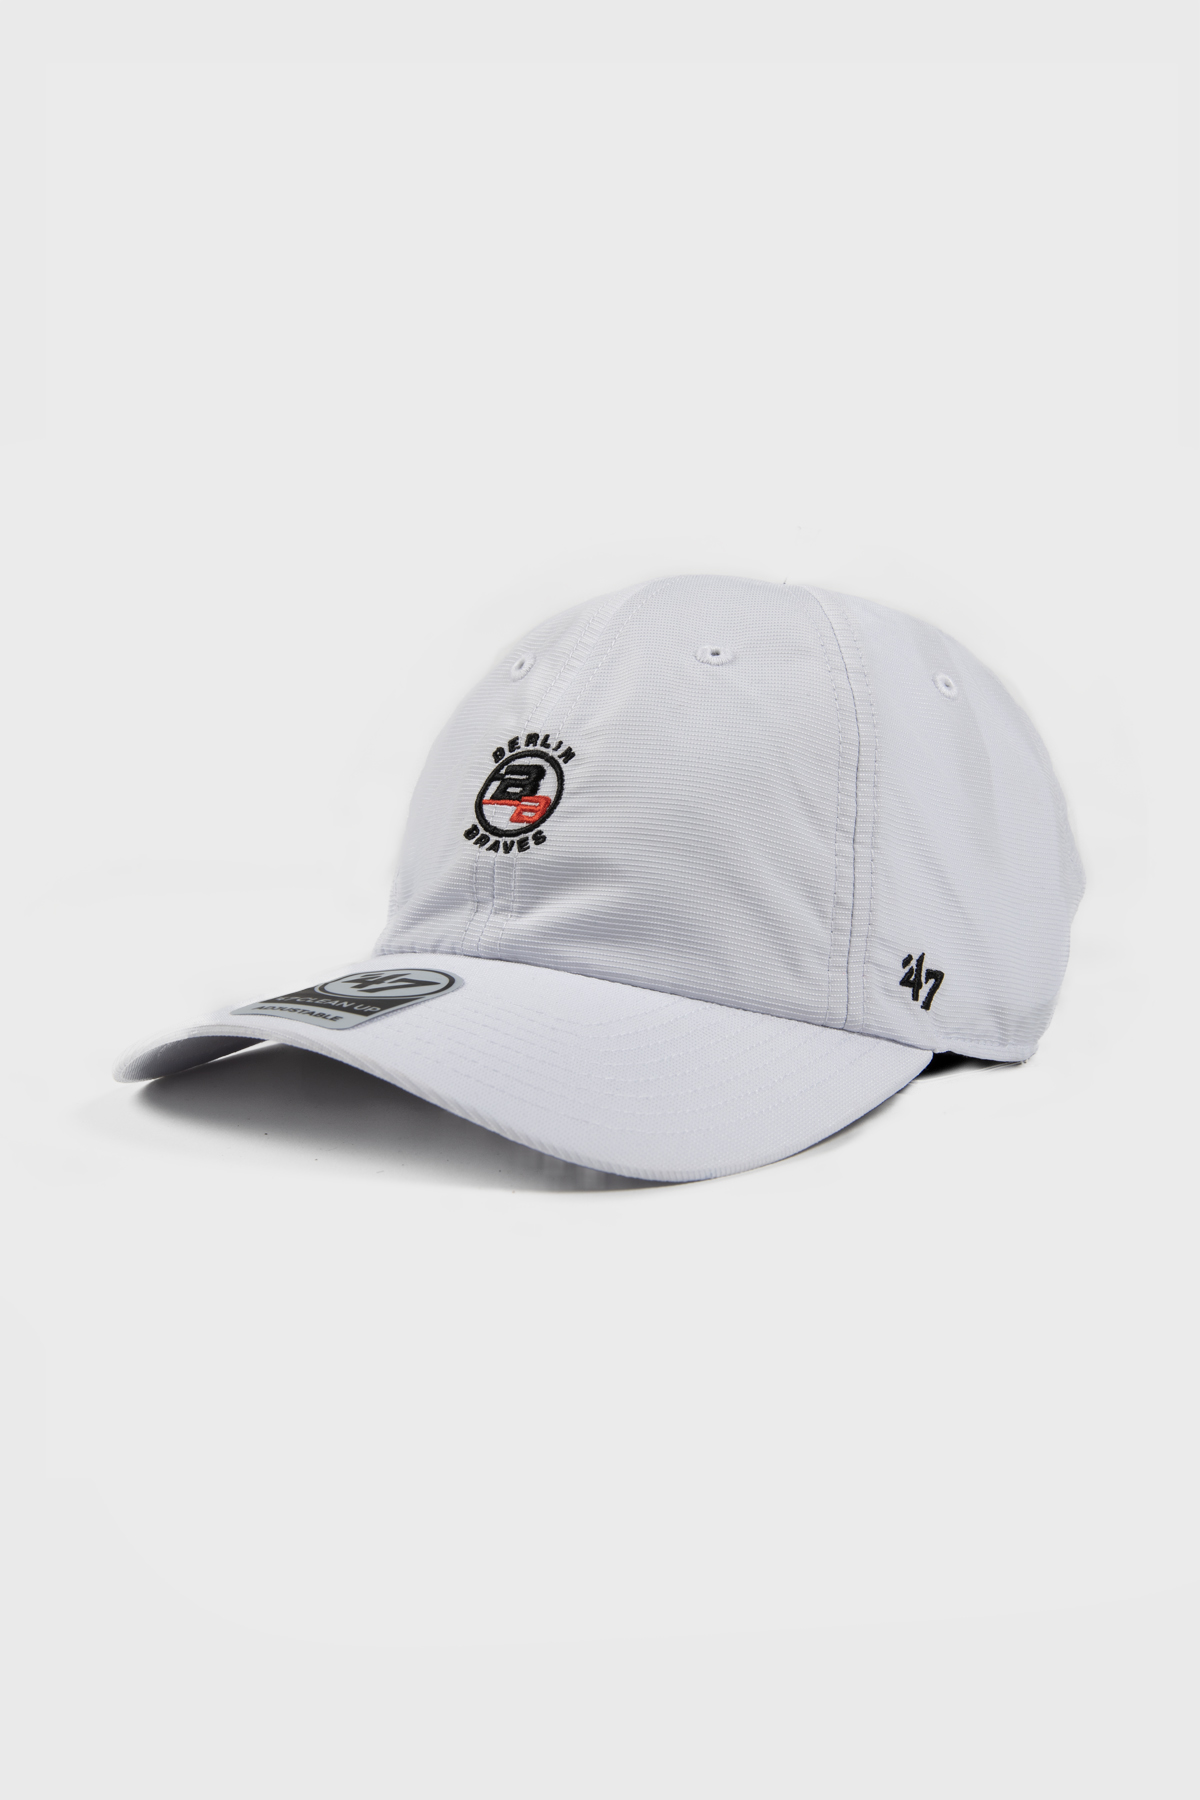 Berlin Braves - LIGHTWEIGHT RUNNERS HAT - White